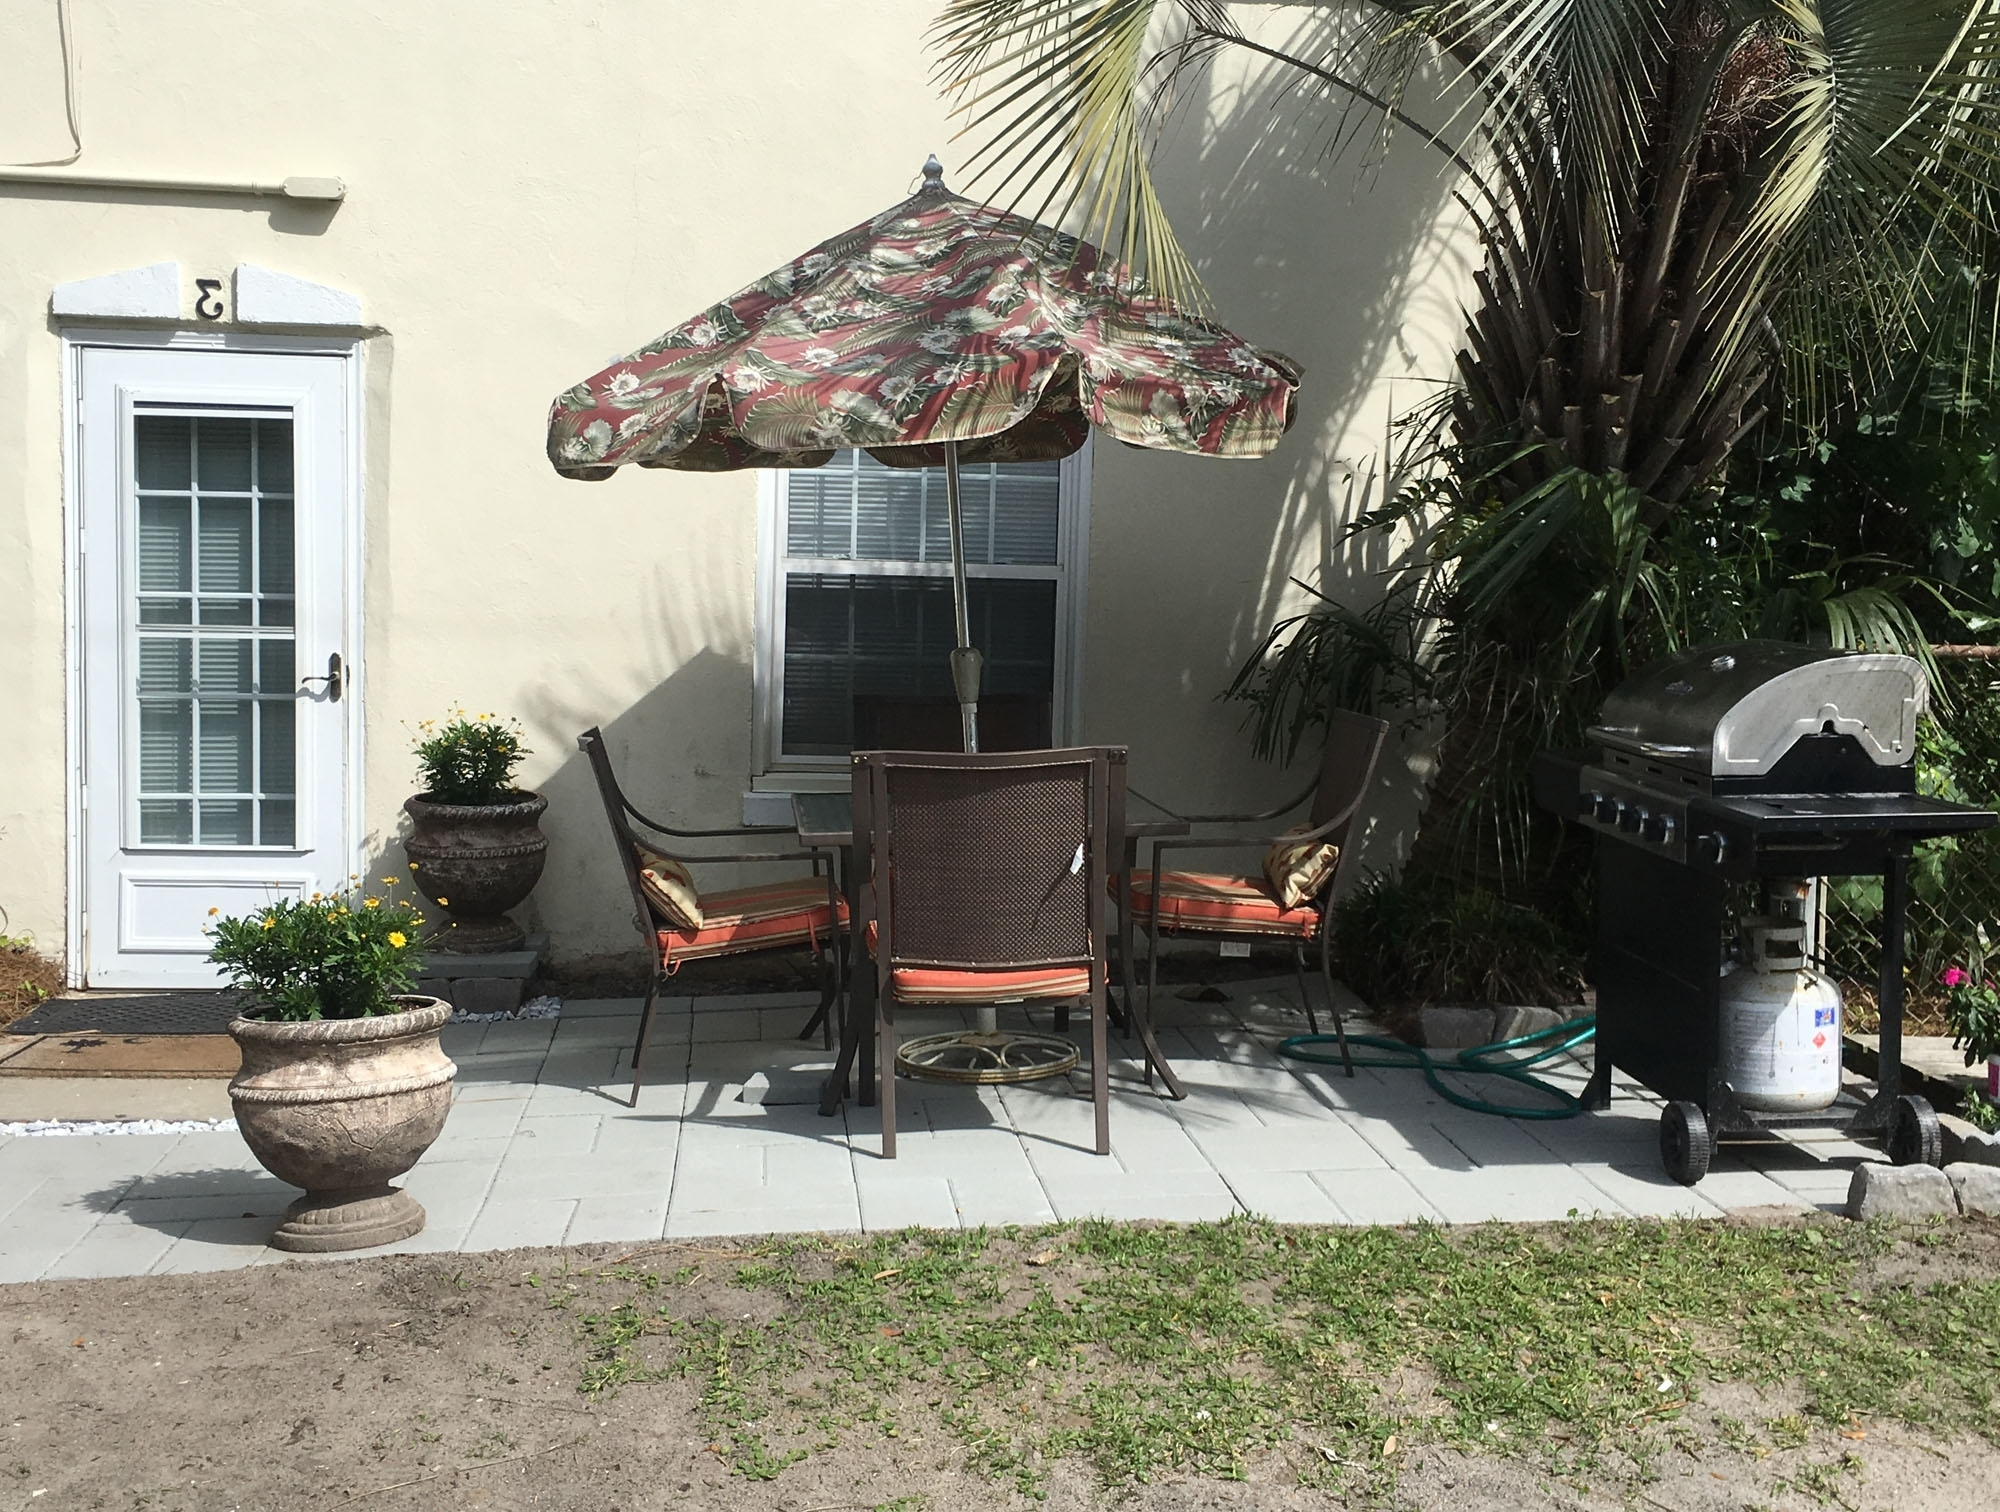 Jewel Patio Umbrellas Pertaining To 2018 Folly Jewel – Chastain's Cottages (View 8 of 20)